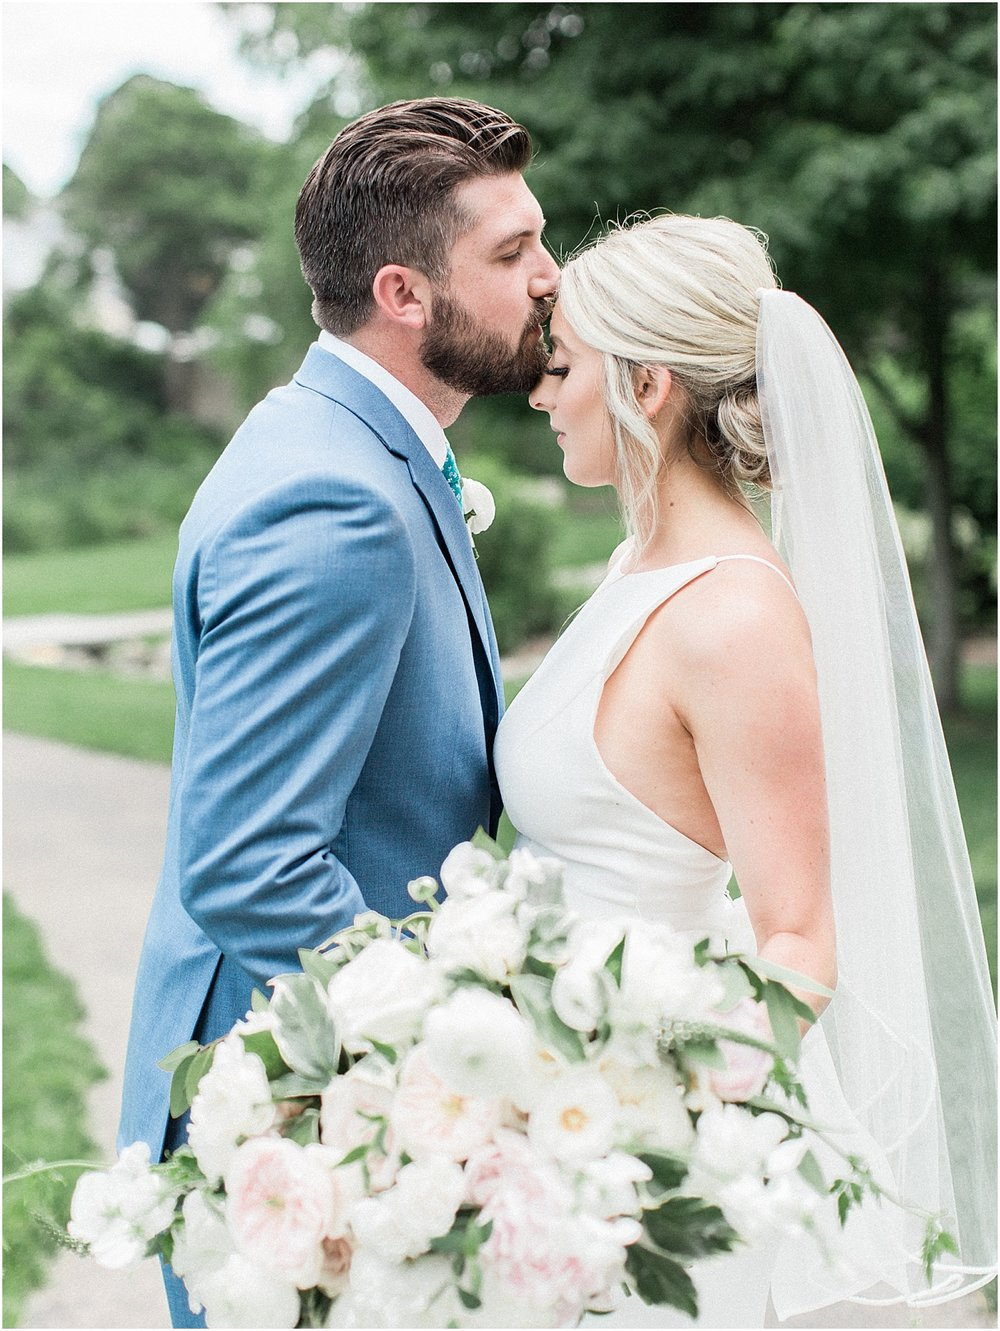 lindsey_paul_indian_pond_country_club_wild_dahlia_brewster_gardens_plymouth_cape_cod_boston_wedding_photographer_meredith_jane_photography_photo_0372.jpg